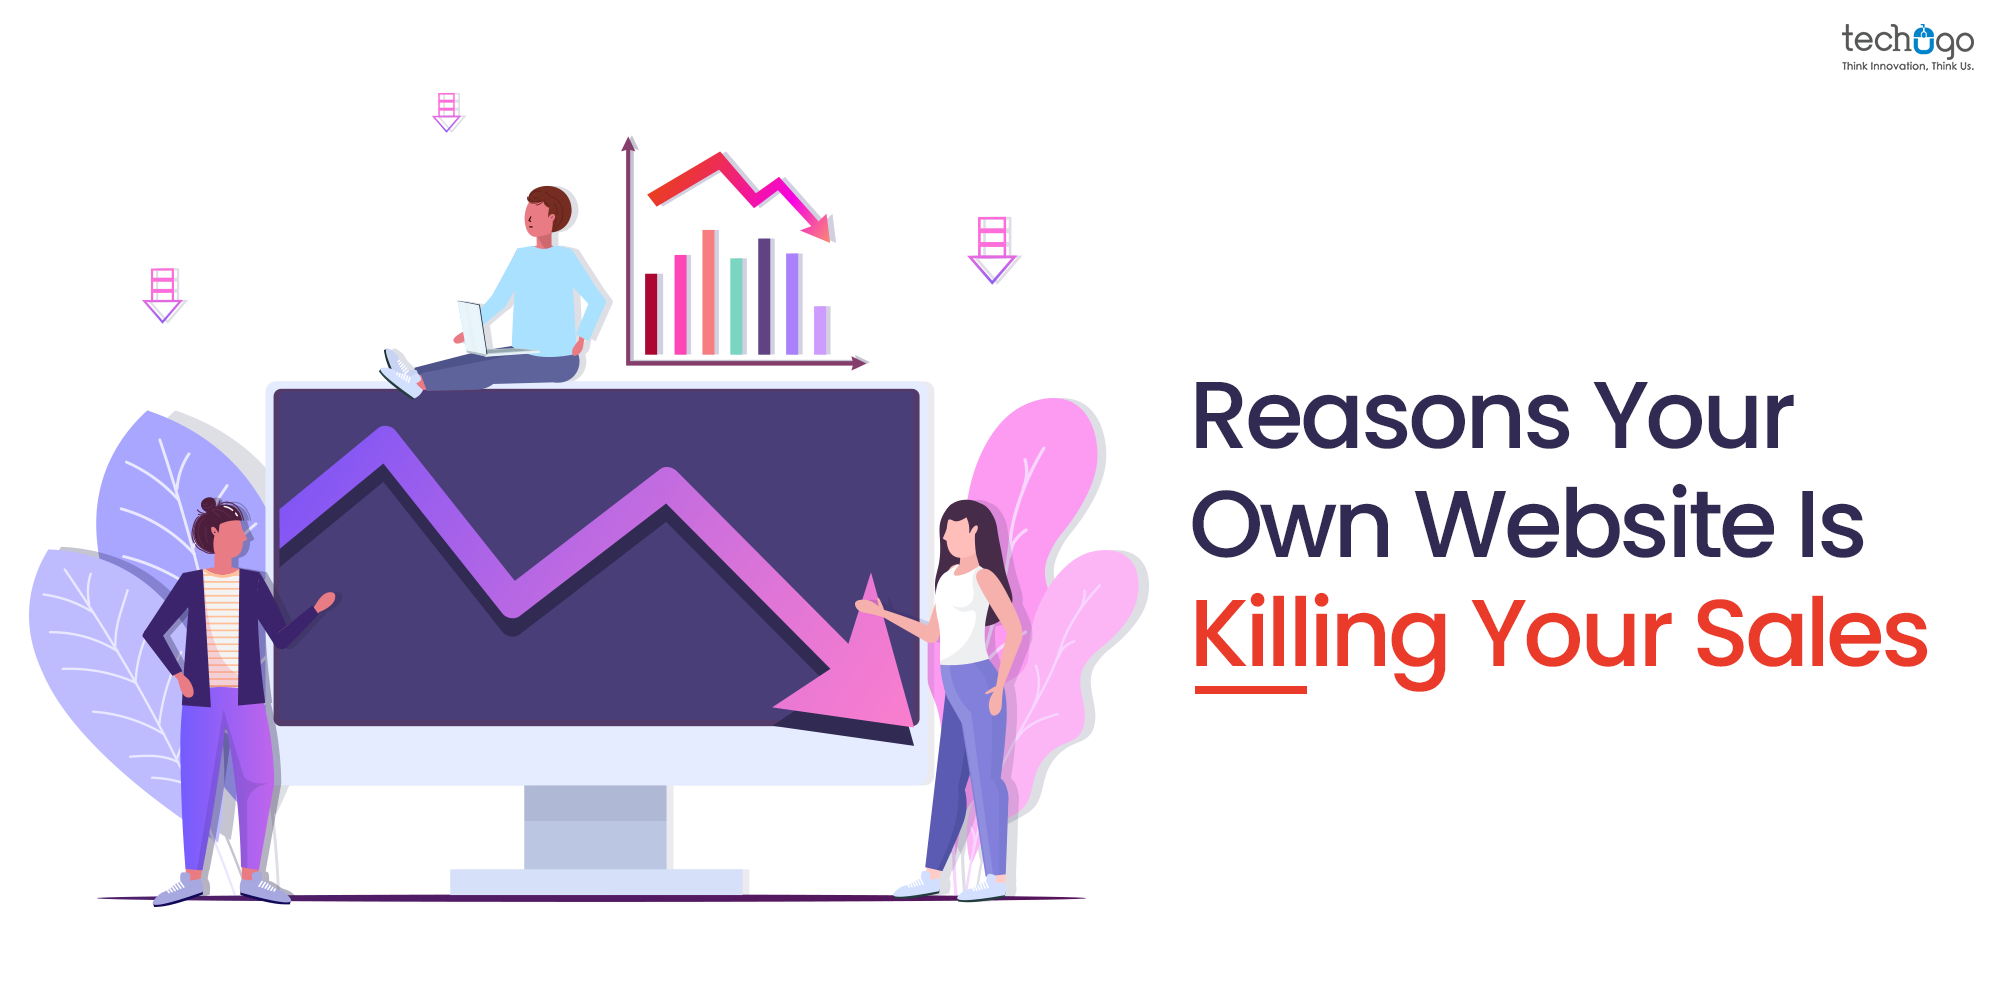 Reasons Your Own Website Is Killing Your Sales